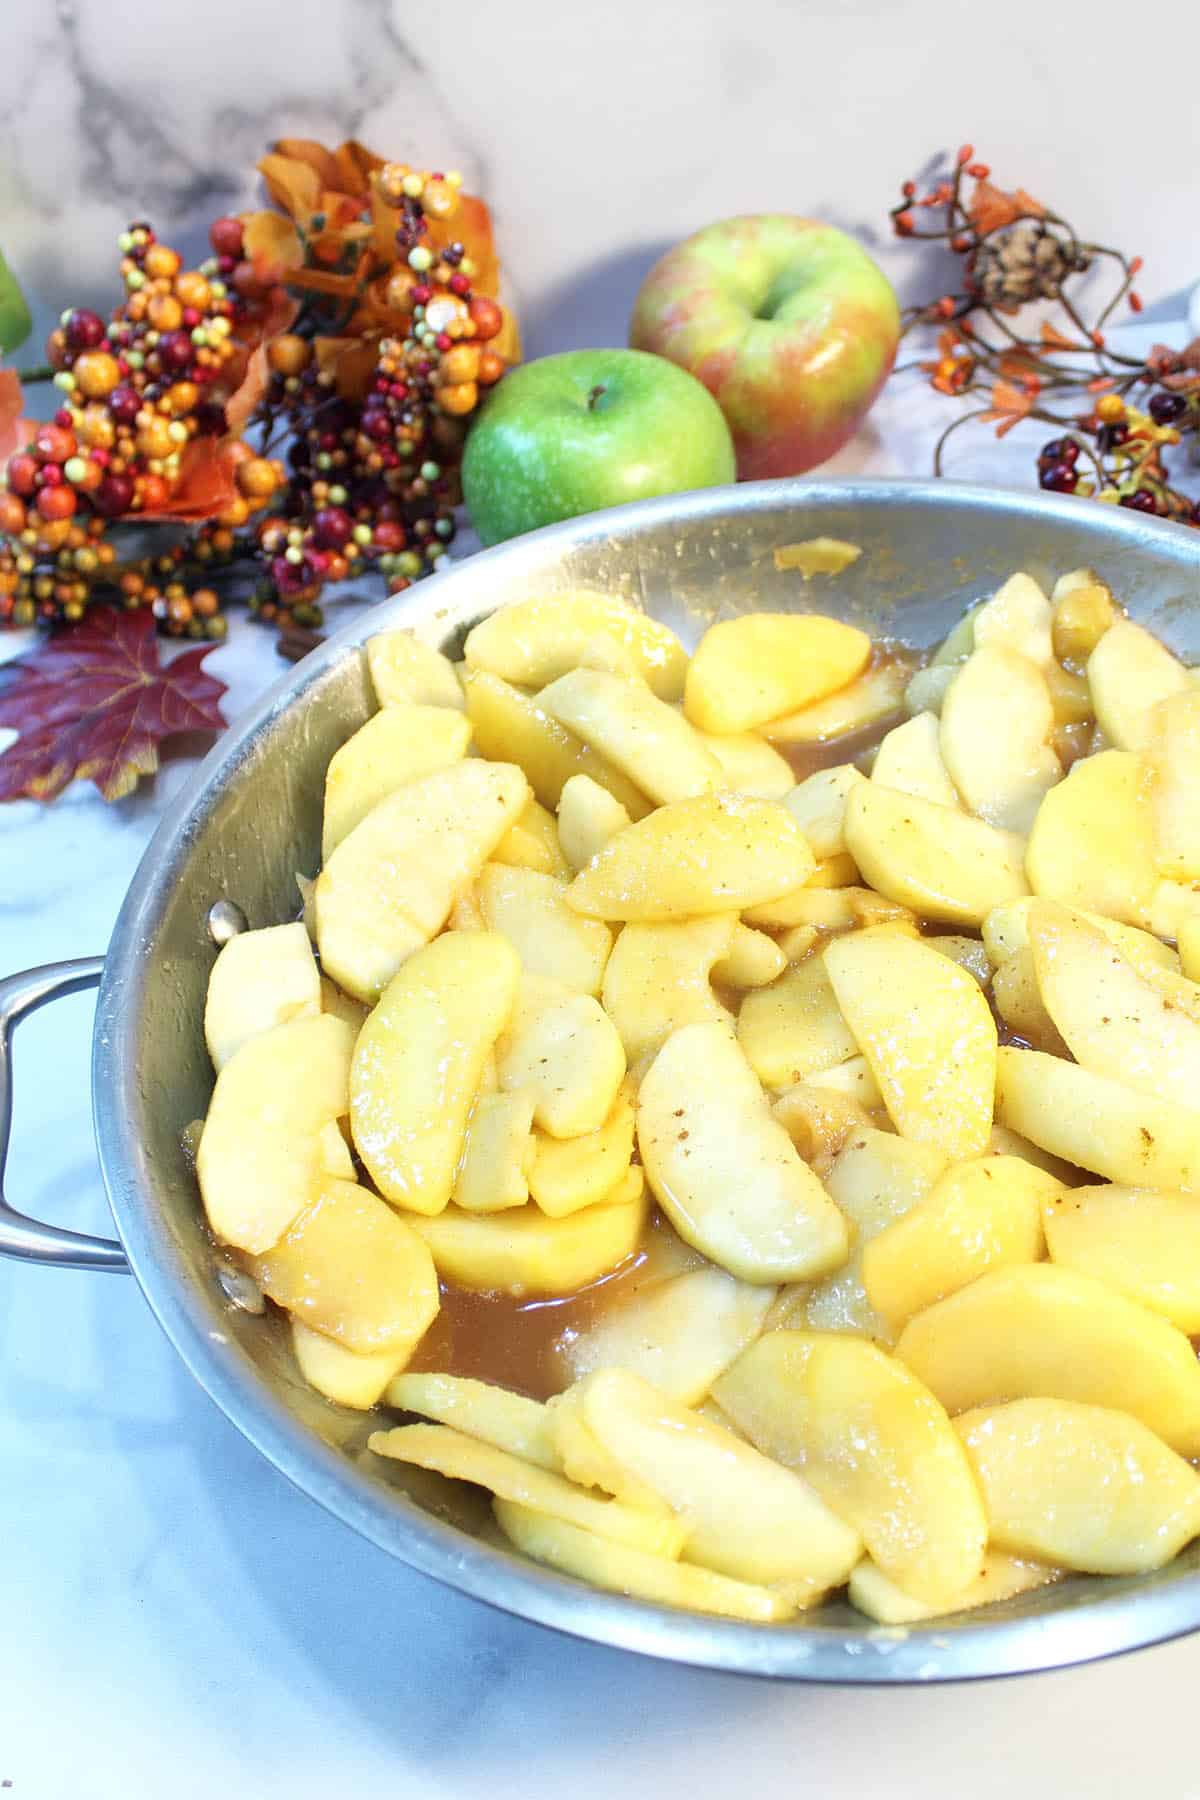 Partial view of skillet with cooked apples with fall foliage in back.